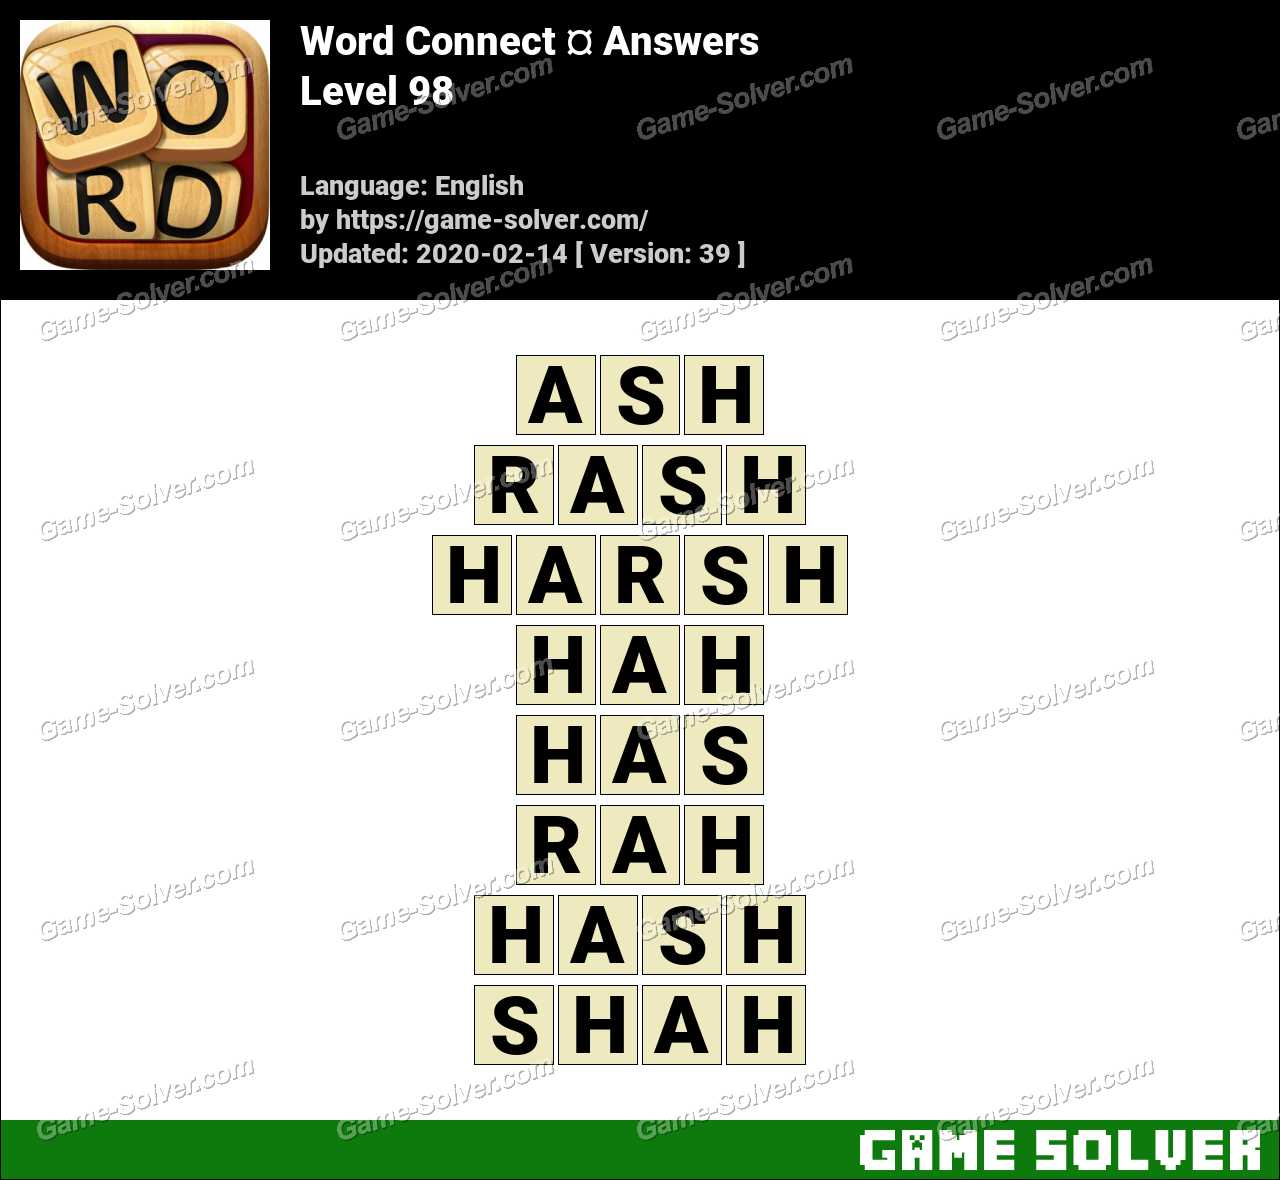 Word Connect Level 98 Answers